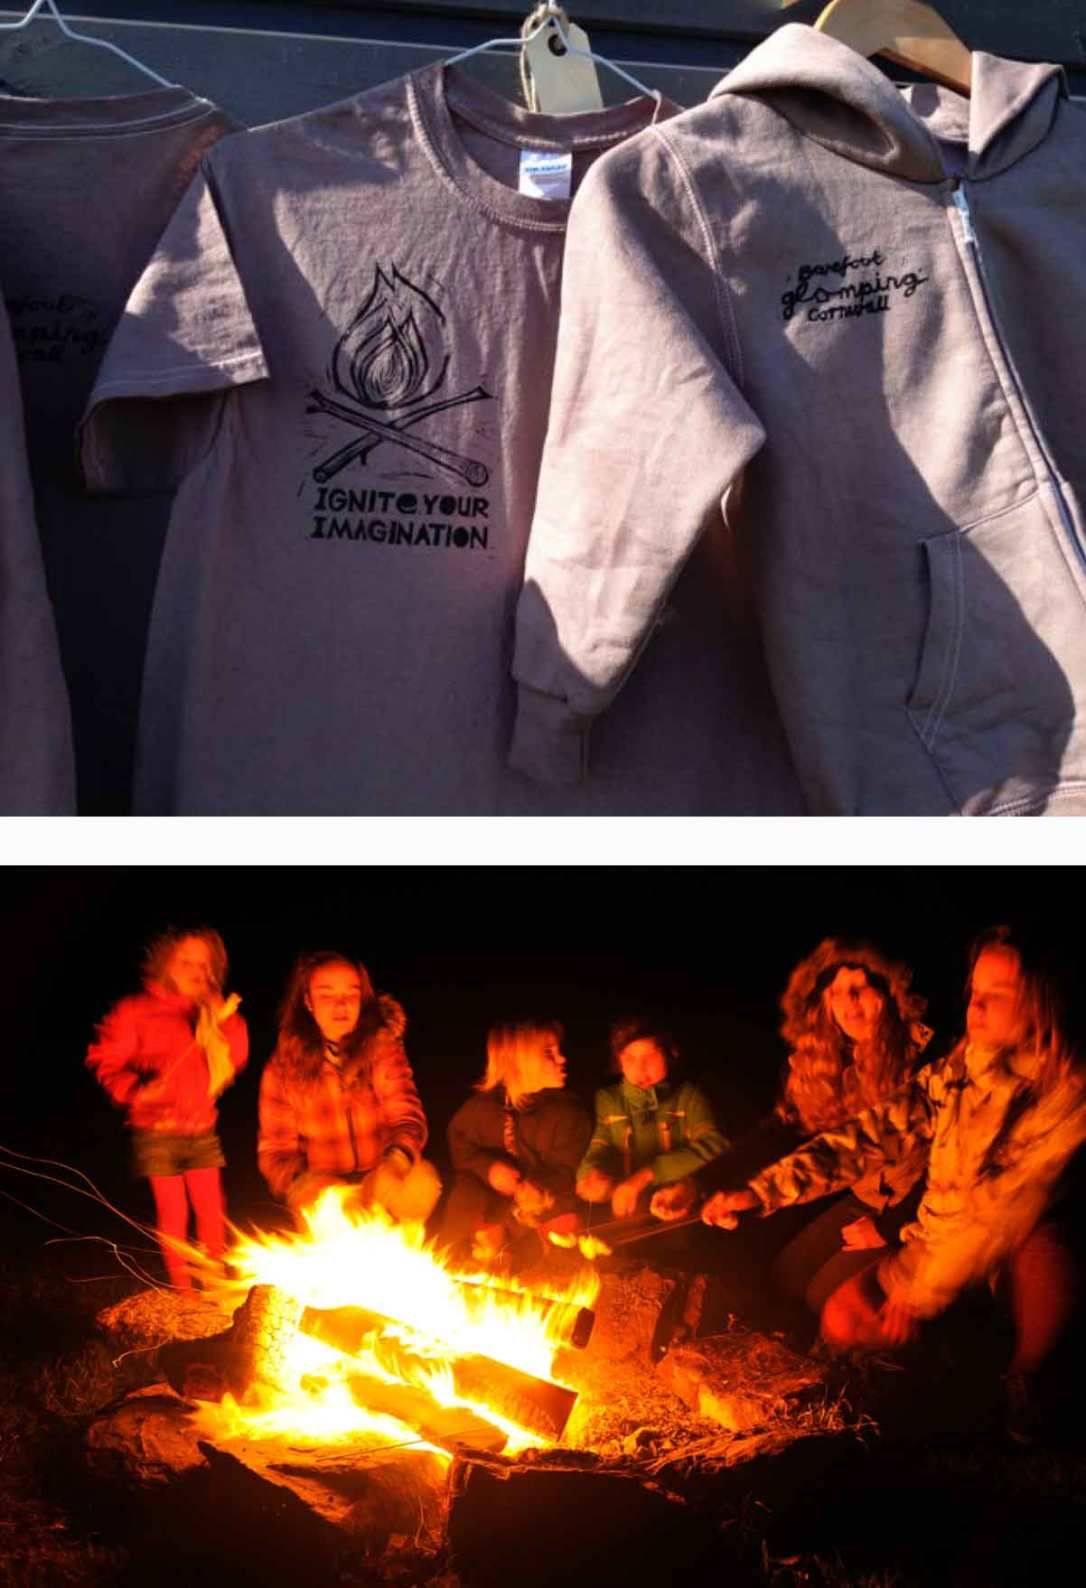 barefoot glamping ignite your imagination t-shirts and kids around the fire pit in Cornwall